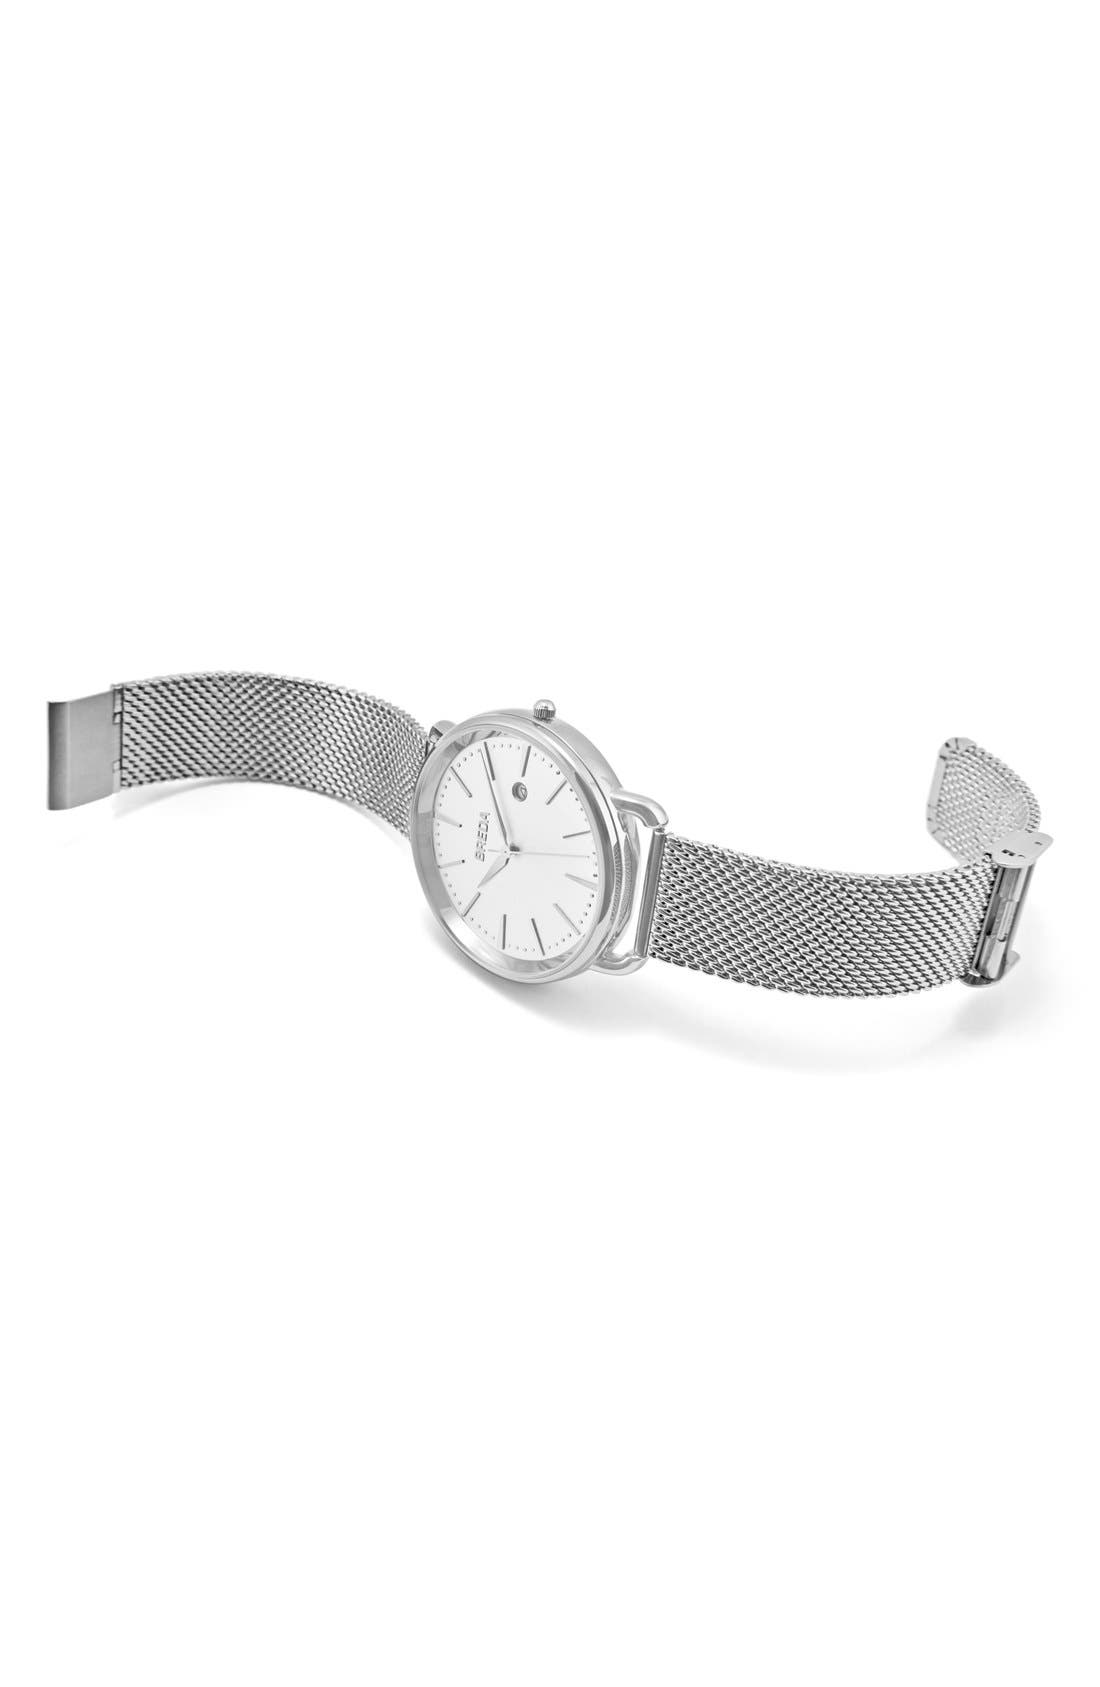 Linx Round Mesh Strap Watch, 42mm,                             Alternate thumbnail 3, color,                             Silver/ Silver